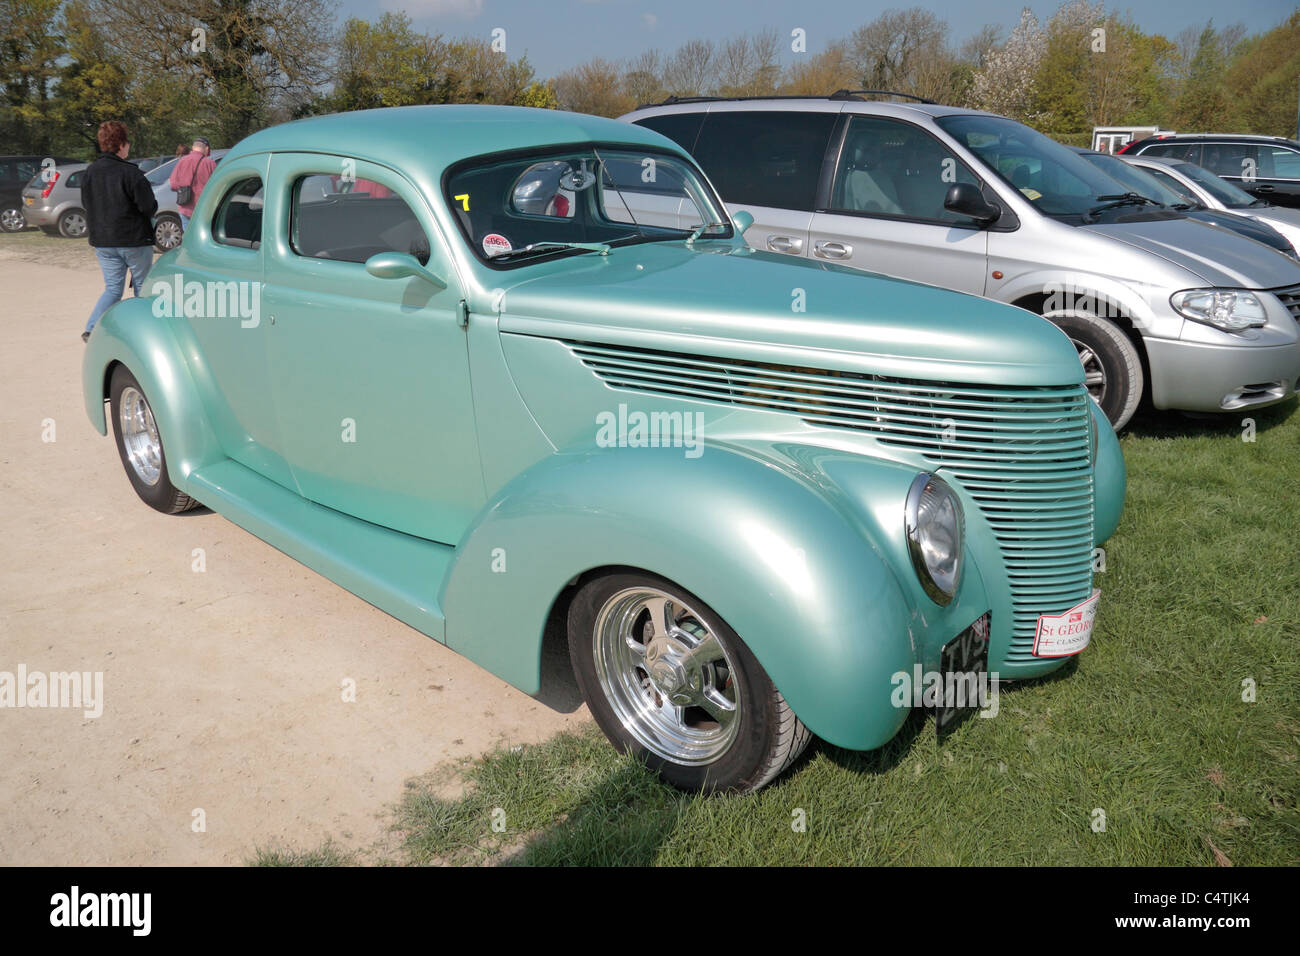 1938 ford coupe stock photos 1938 ford coupe stock images alamy 1938 Ford 5 Window a beautiful light green coloured 1938 five window ford coupe classic american car parked in avebury